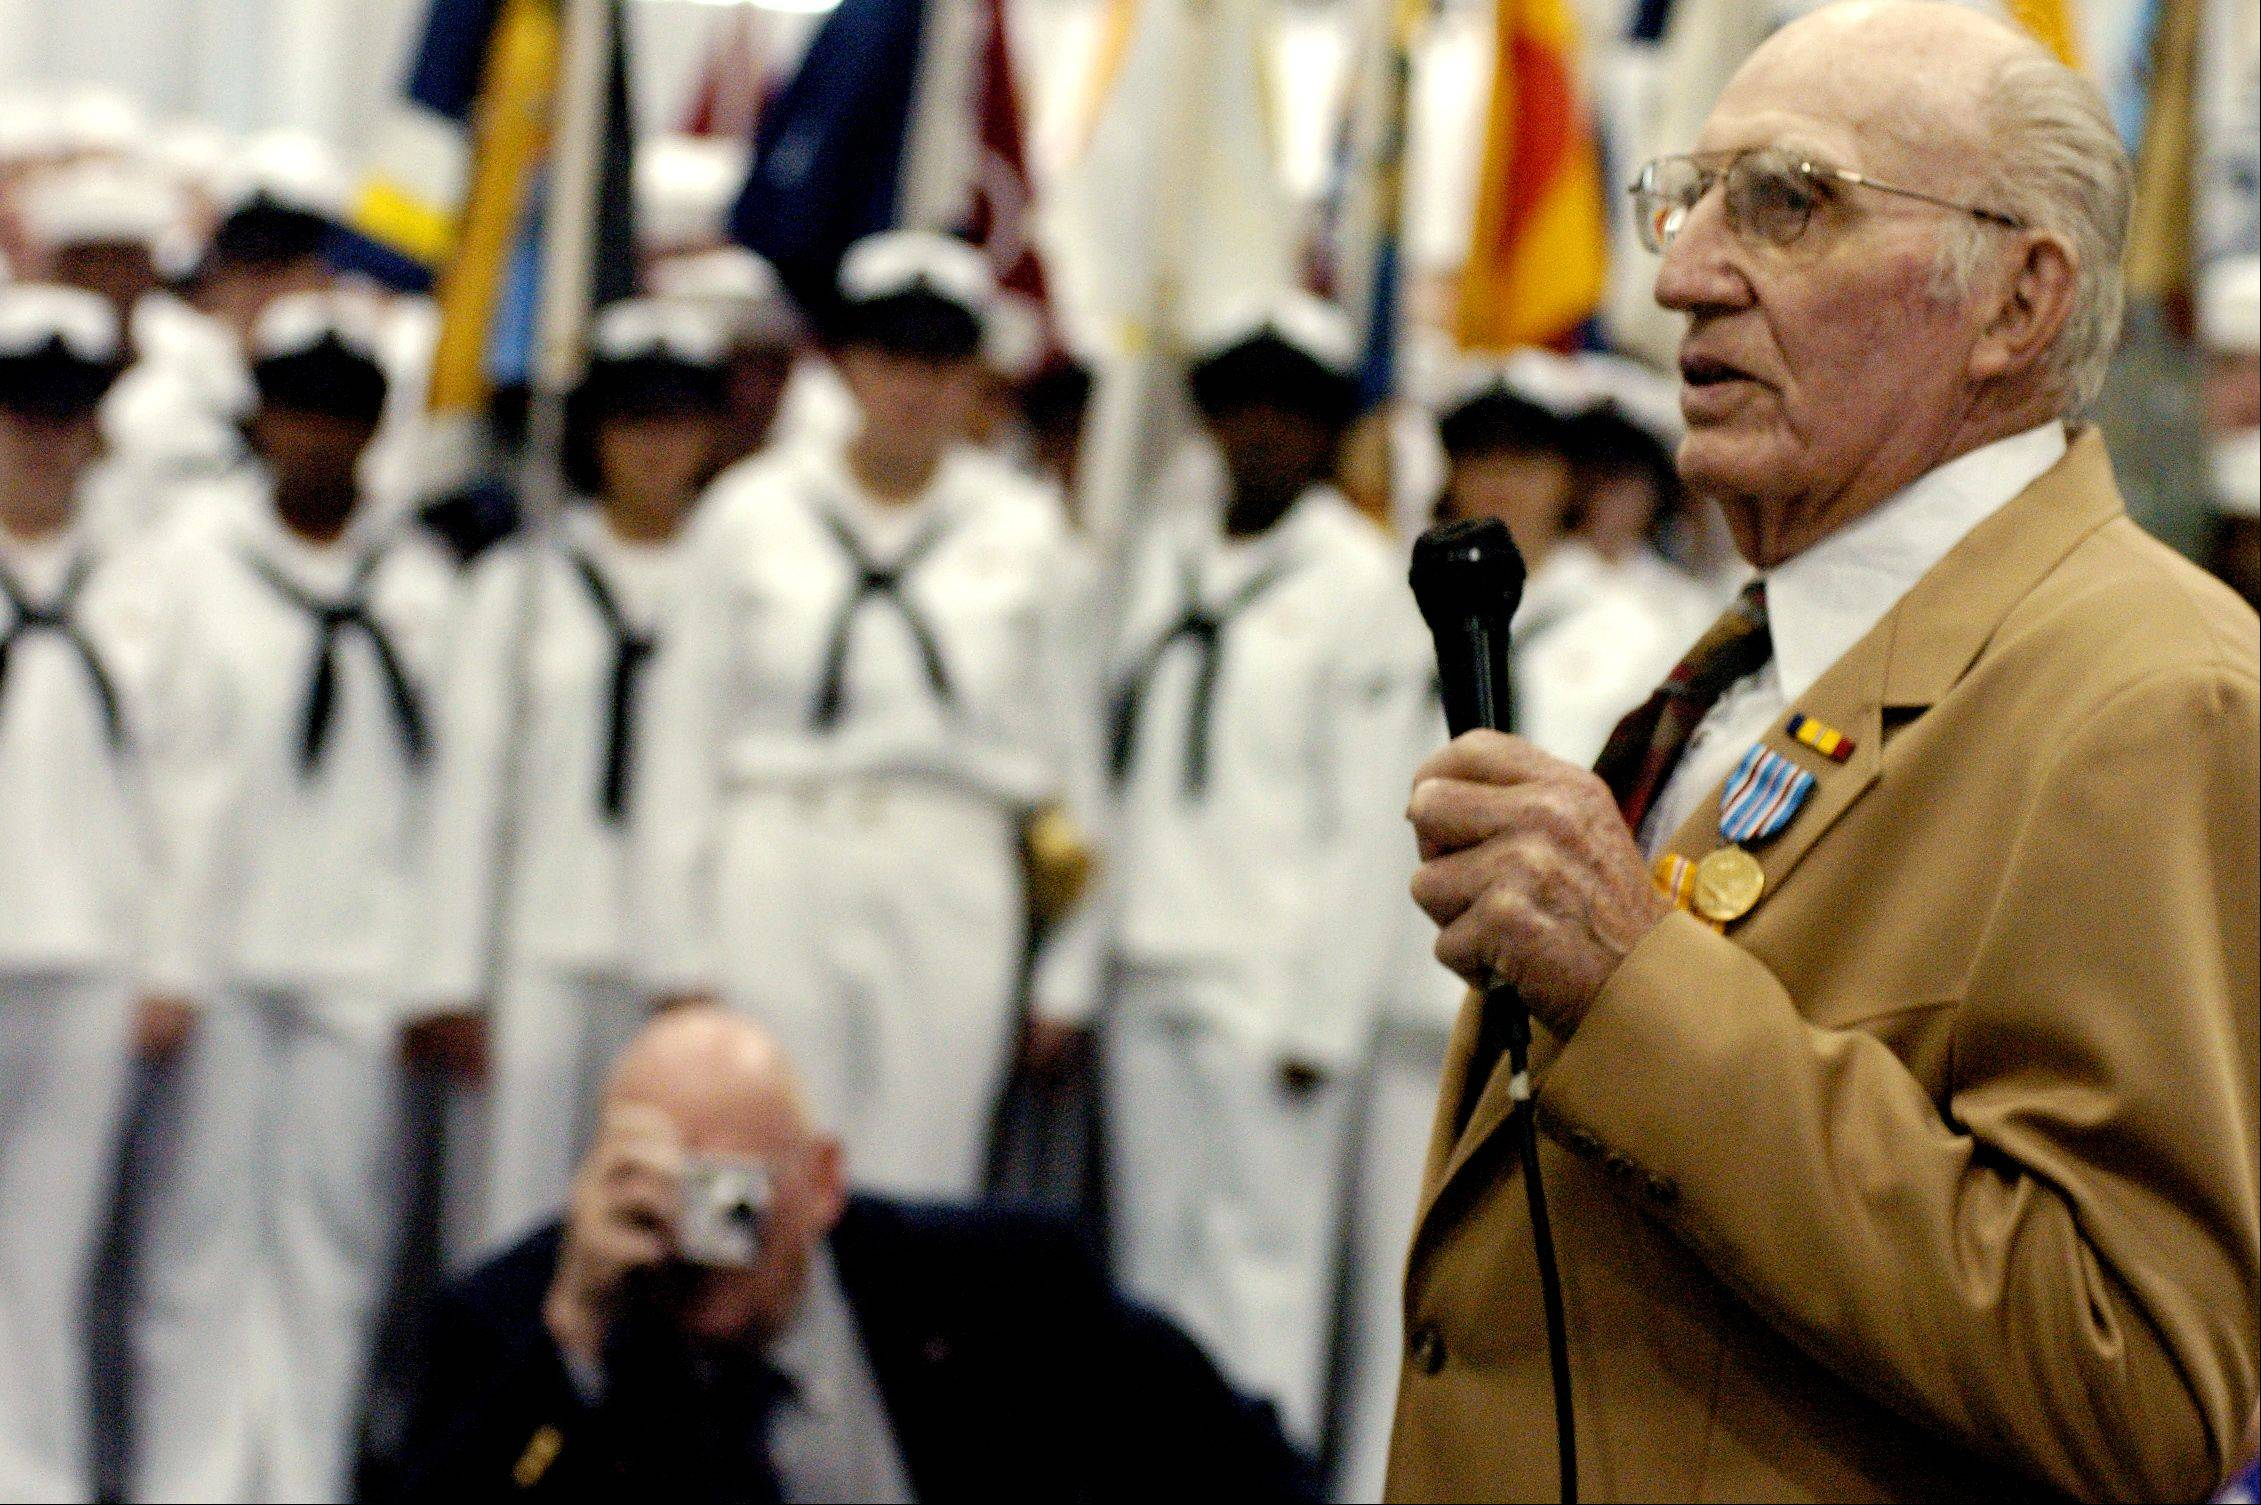 George Gebes, a World War II Navy veteran, says a few words of thanks to recruits and guests after receiving medals overdue by nearly 60 years at Great Lakes Naval Center in North Chicago in 2004. Gebes died Monday at 98.